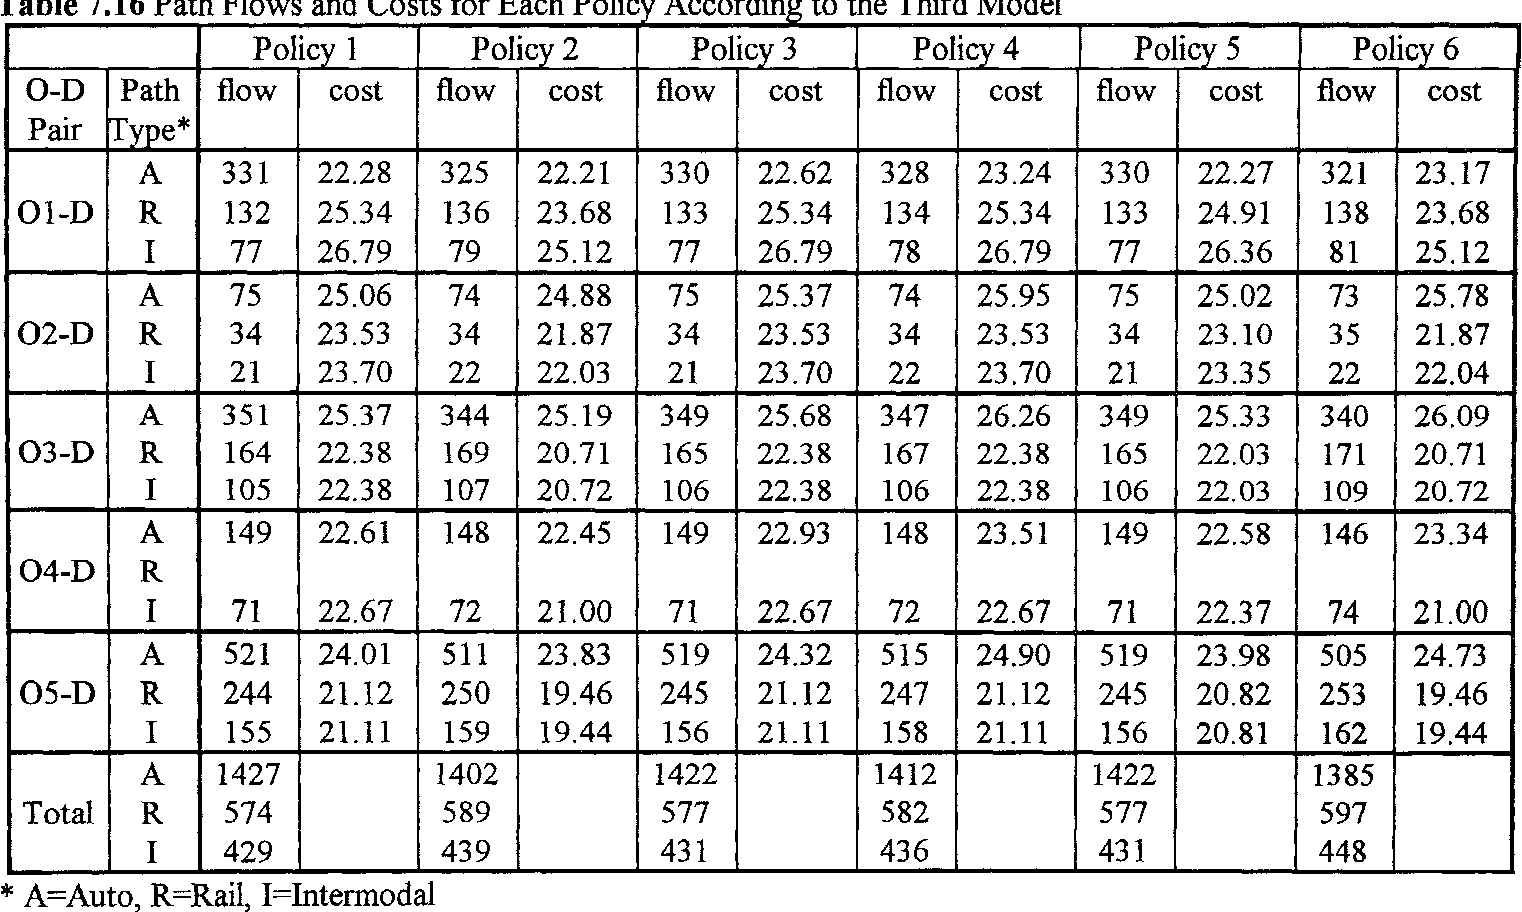 table 7.16